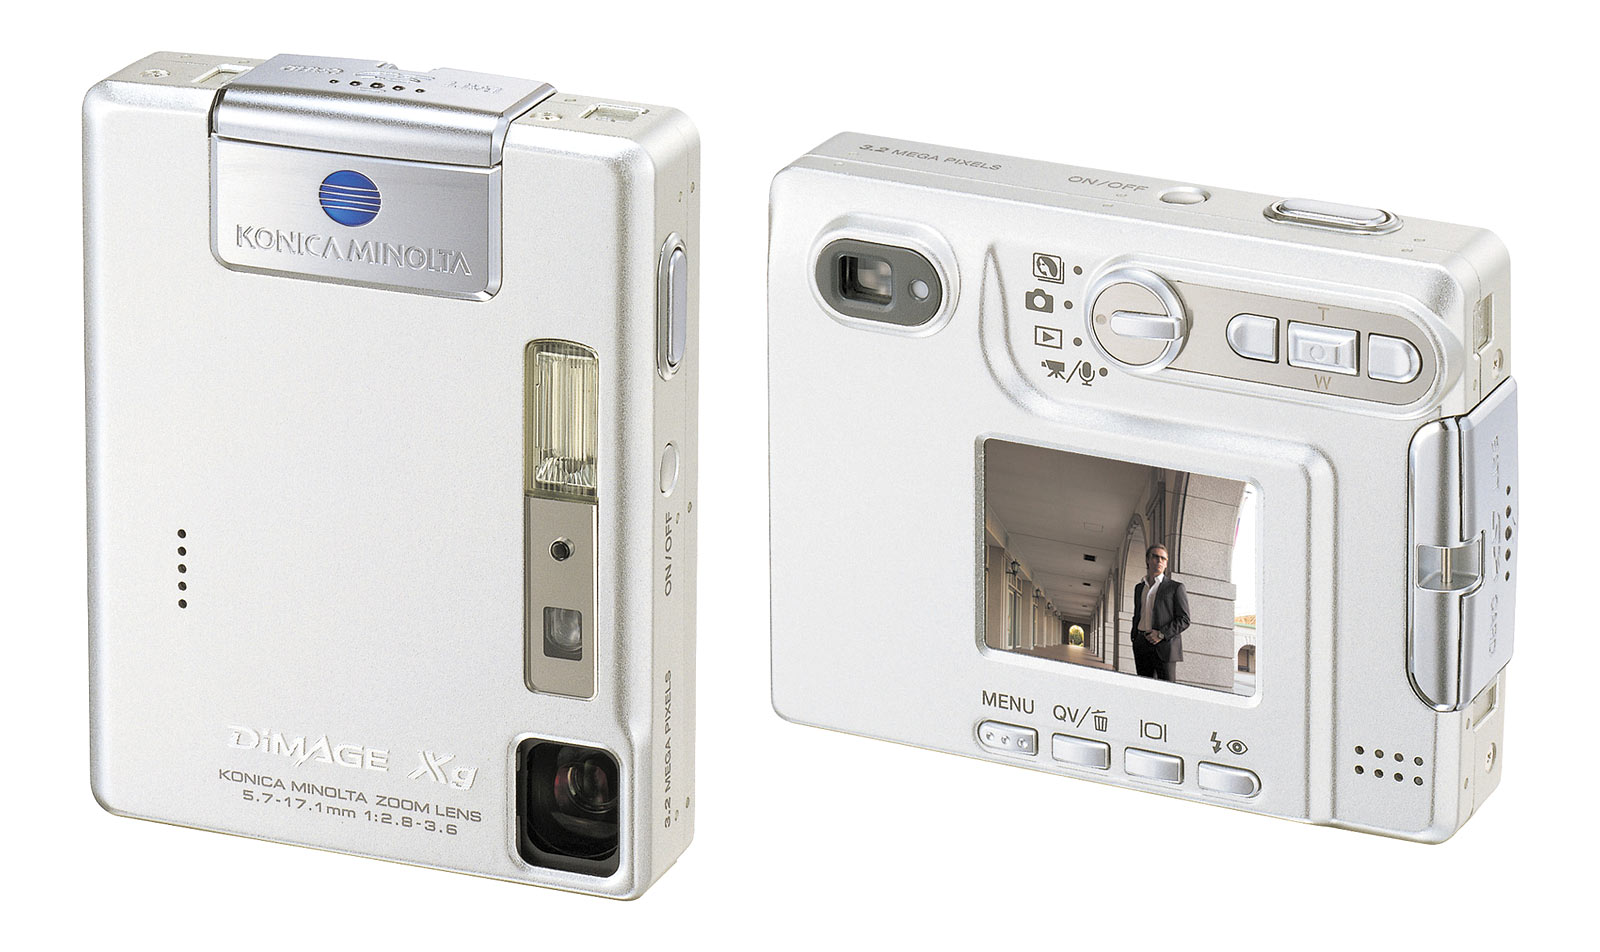 Minolta dimage a1 instruction manual pdf download.